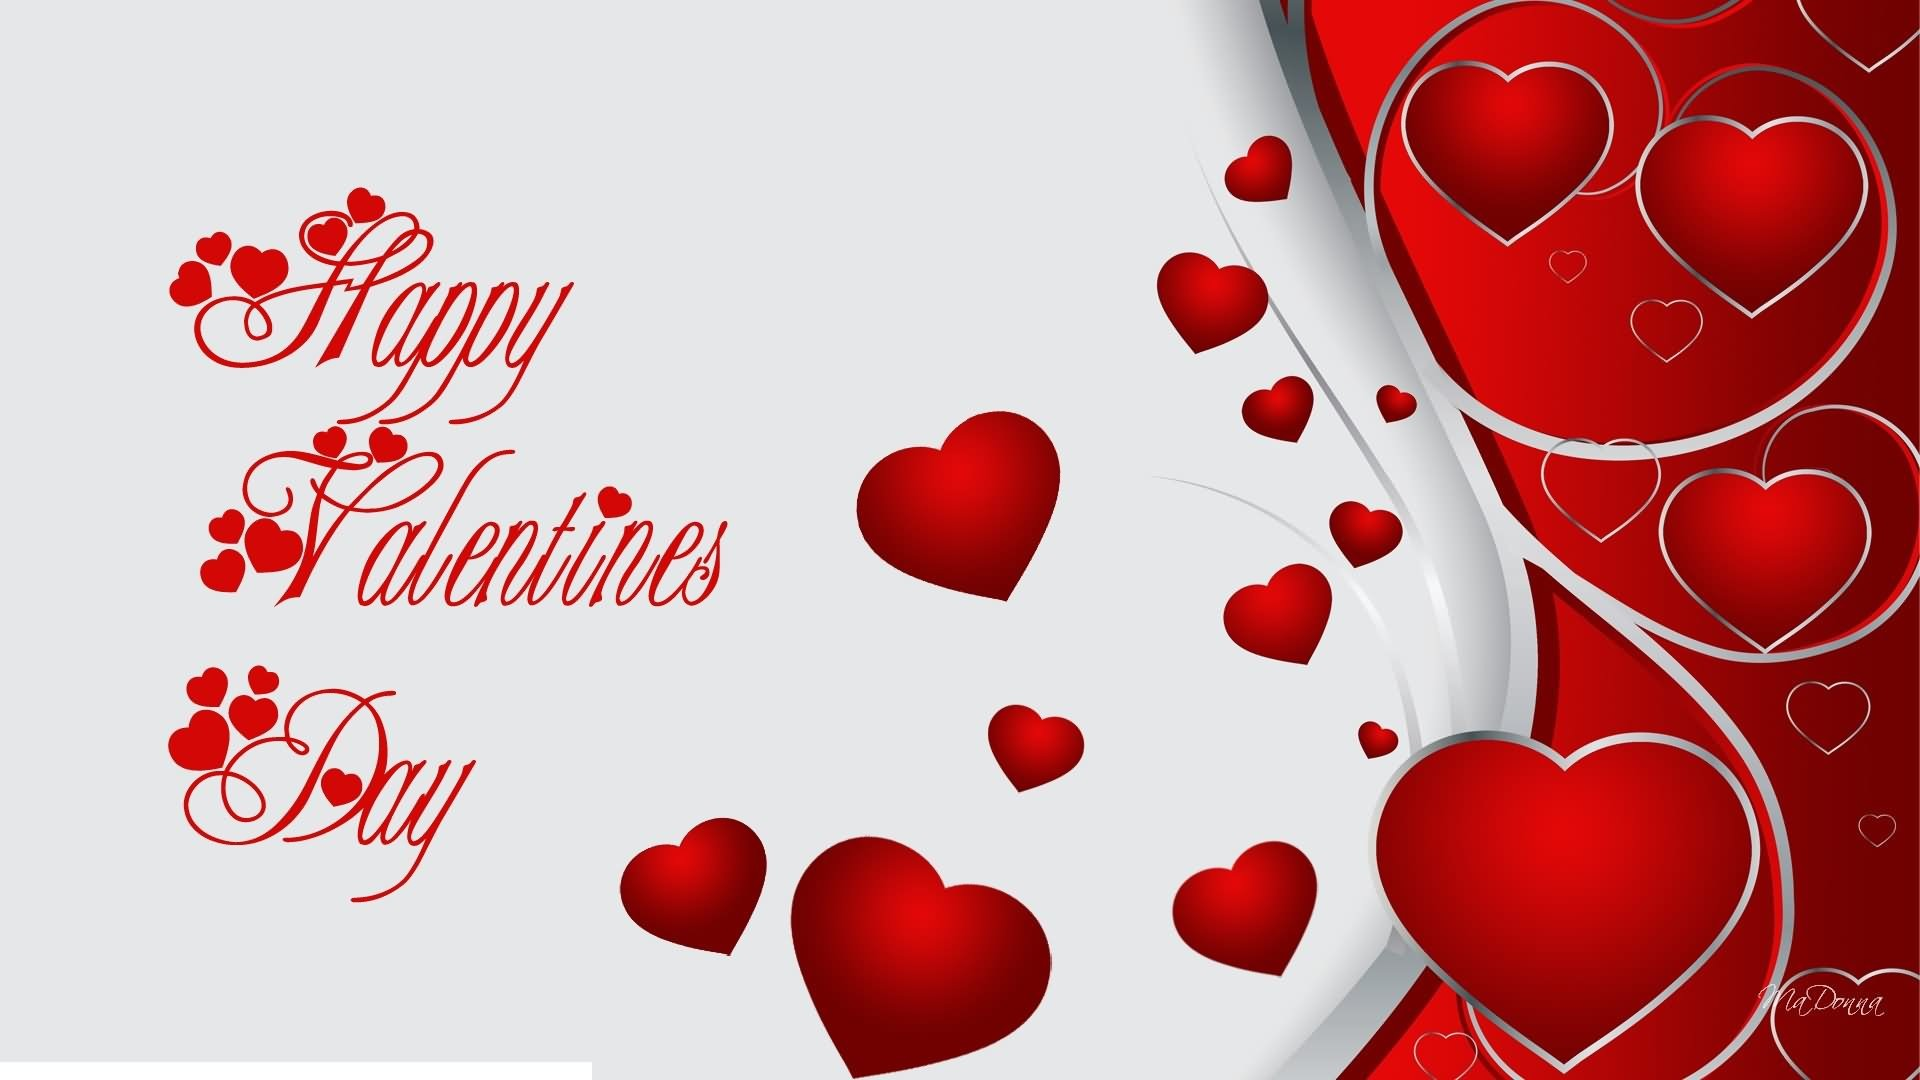 1920x1080 Happy Valentines Day HD Wallpaper